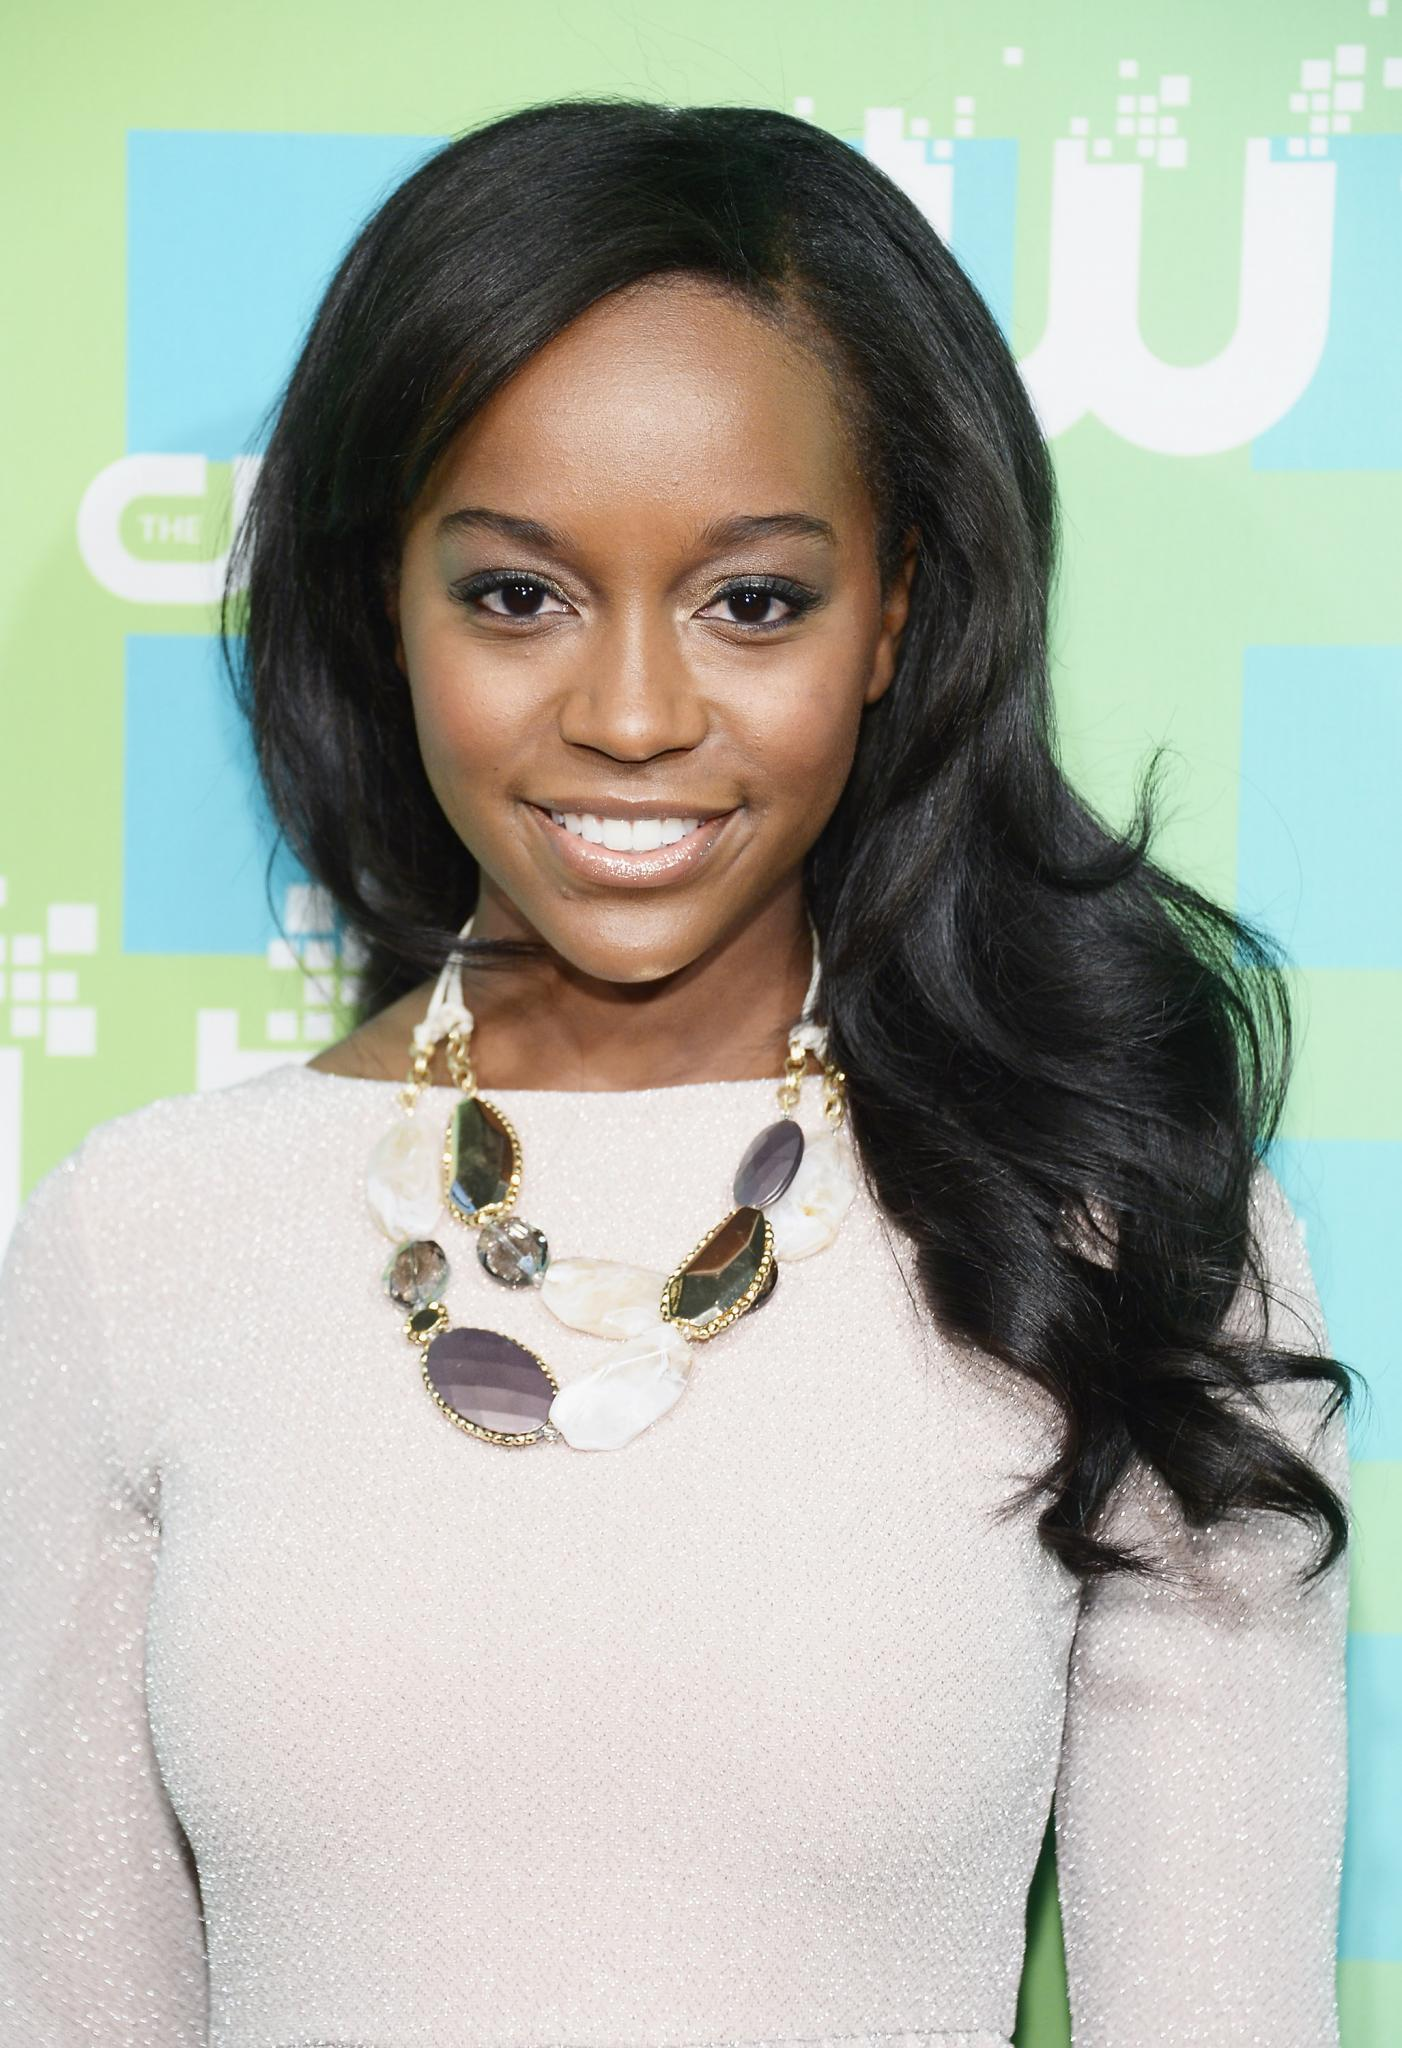 How To Get Away With Murder Star Aja Naomi Kings Hottest